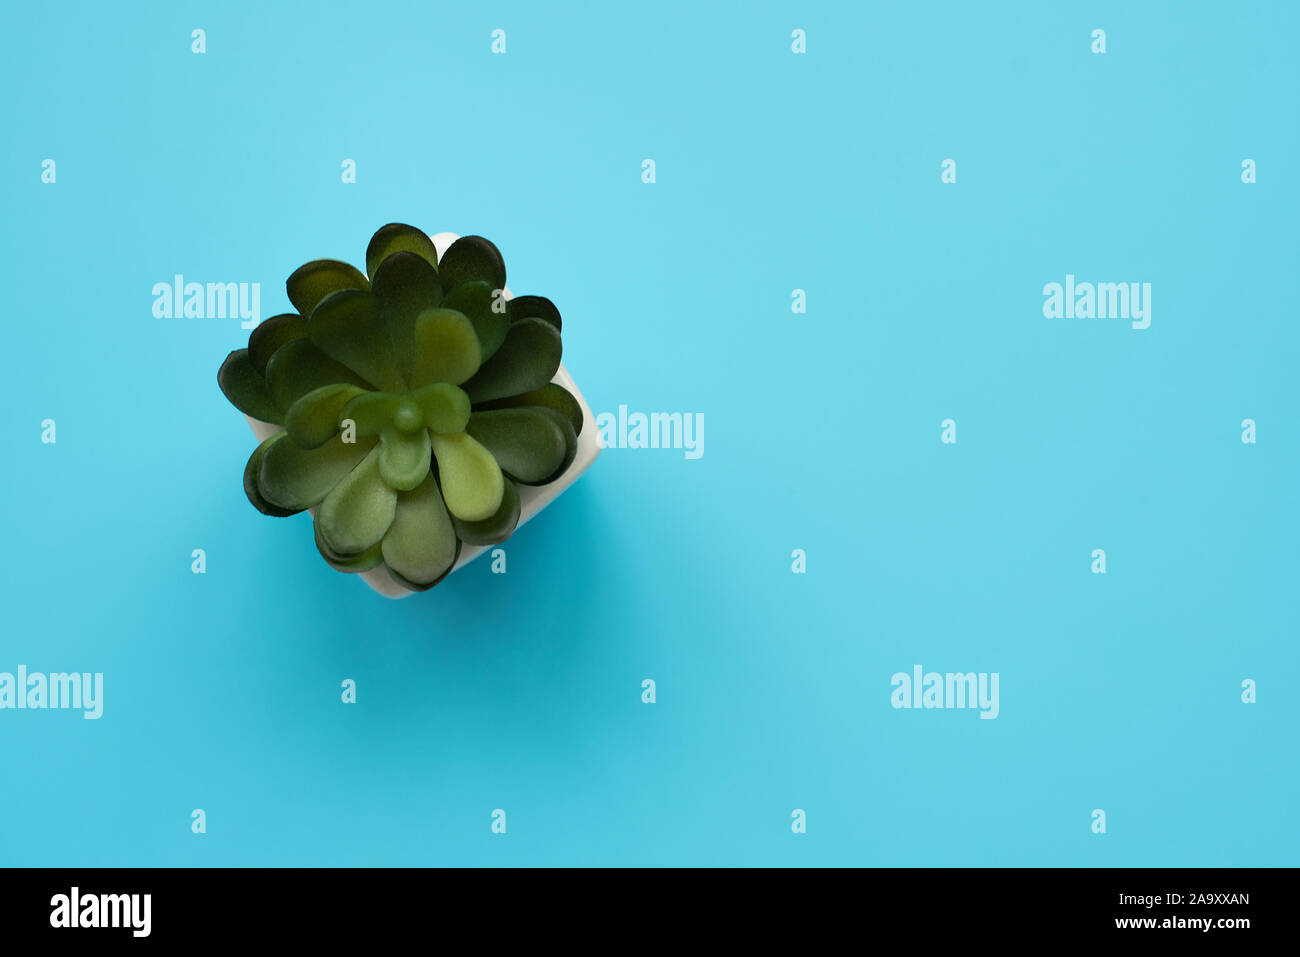 Green House Plants Potted Succulent On Blue Background Top View Copy Space Green House Plant In Pot Stock Photo Alamy